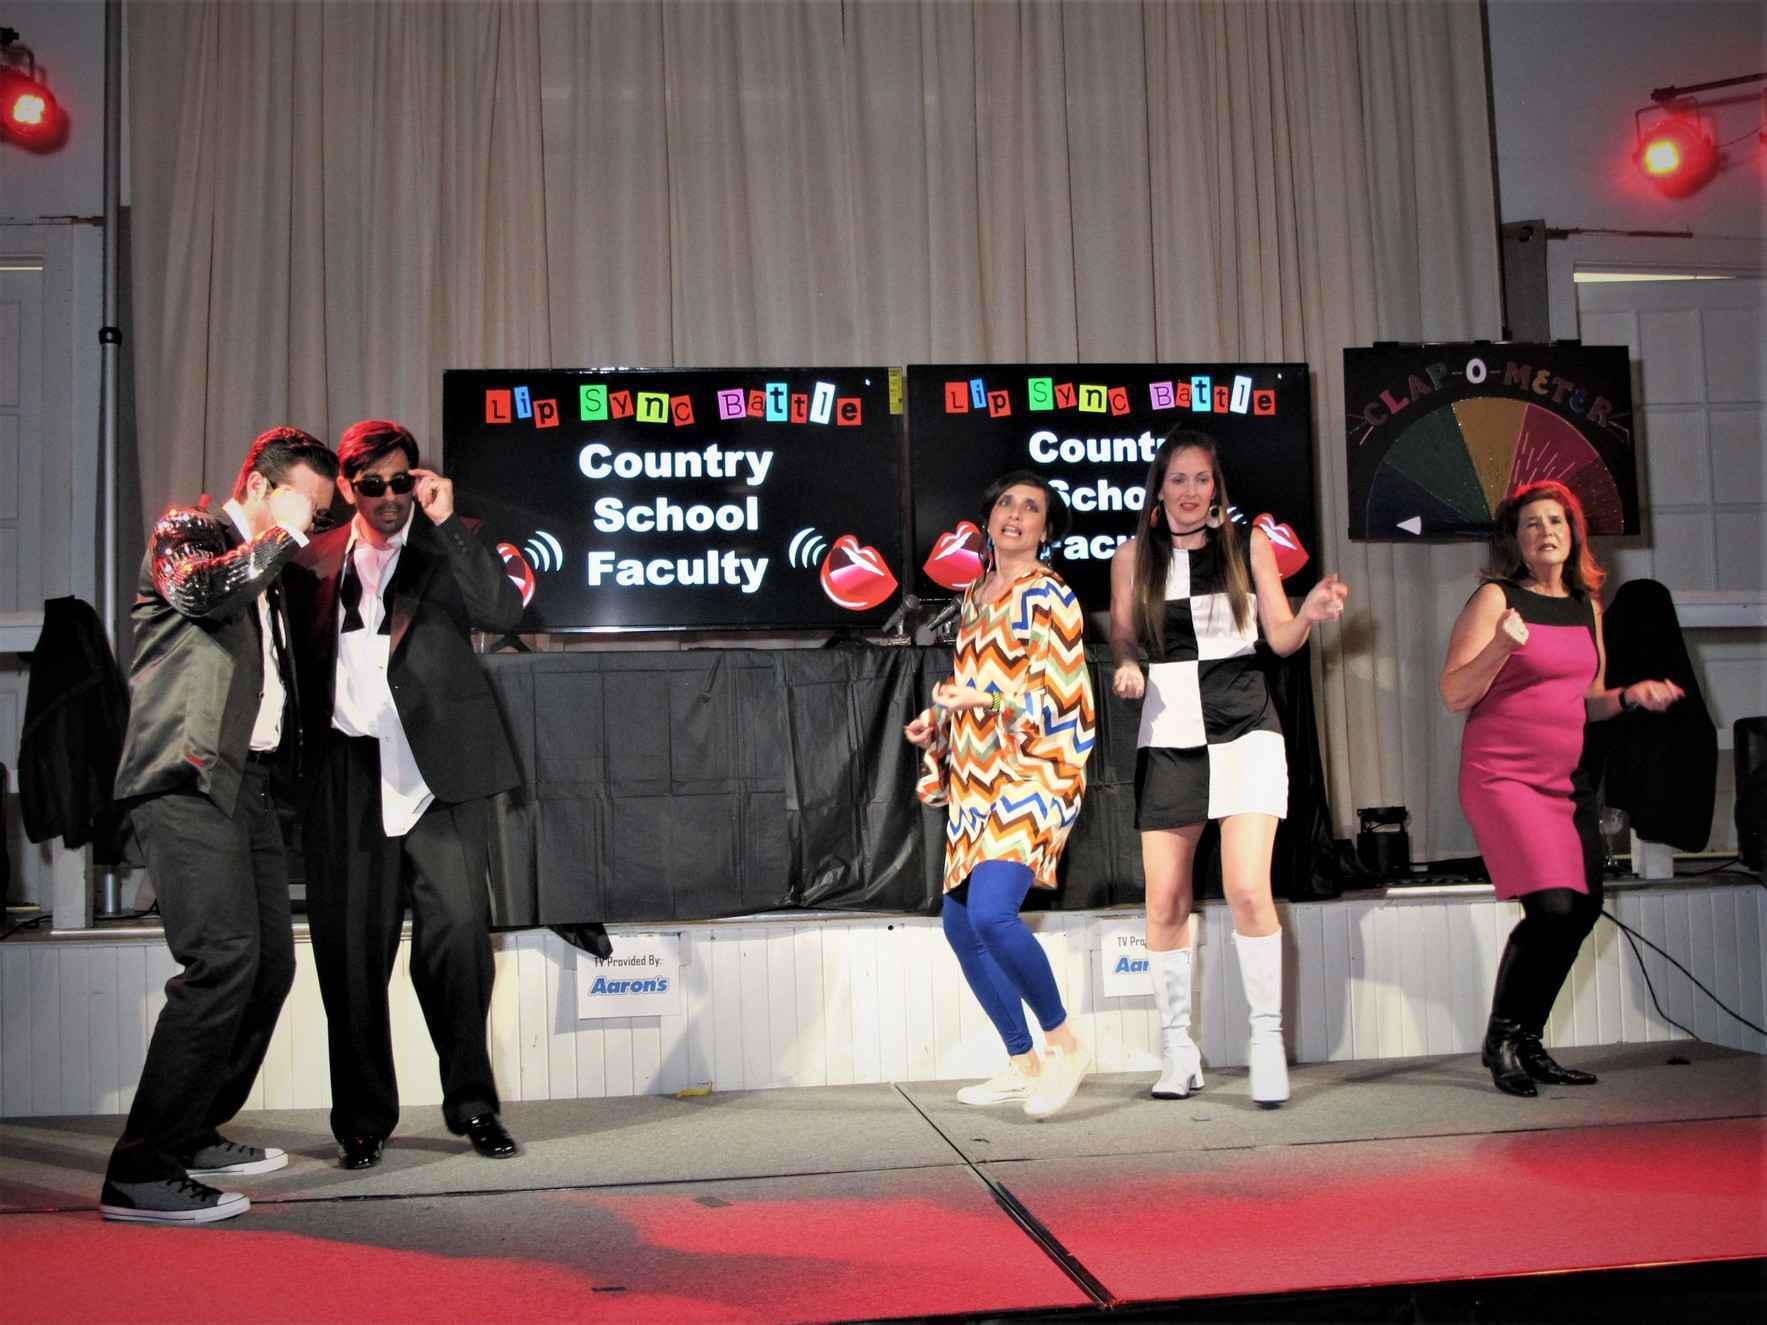 Vote for the Country School Faculty to win this year's Lip Sync Battle! image